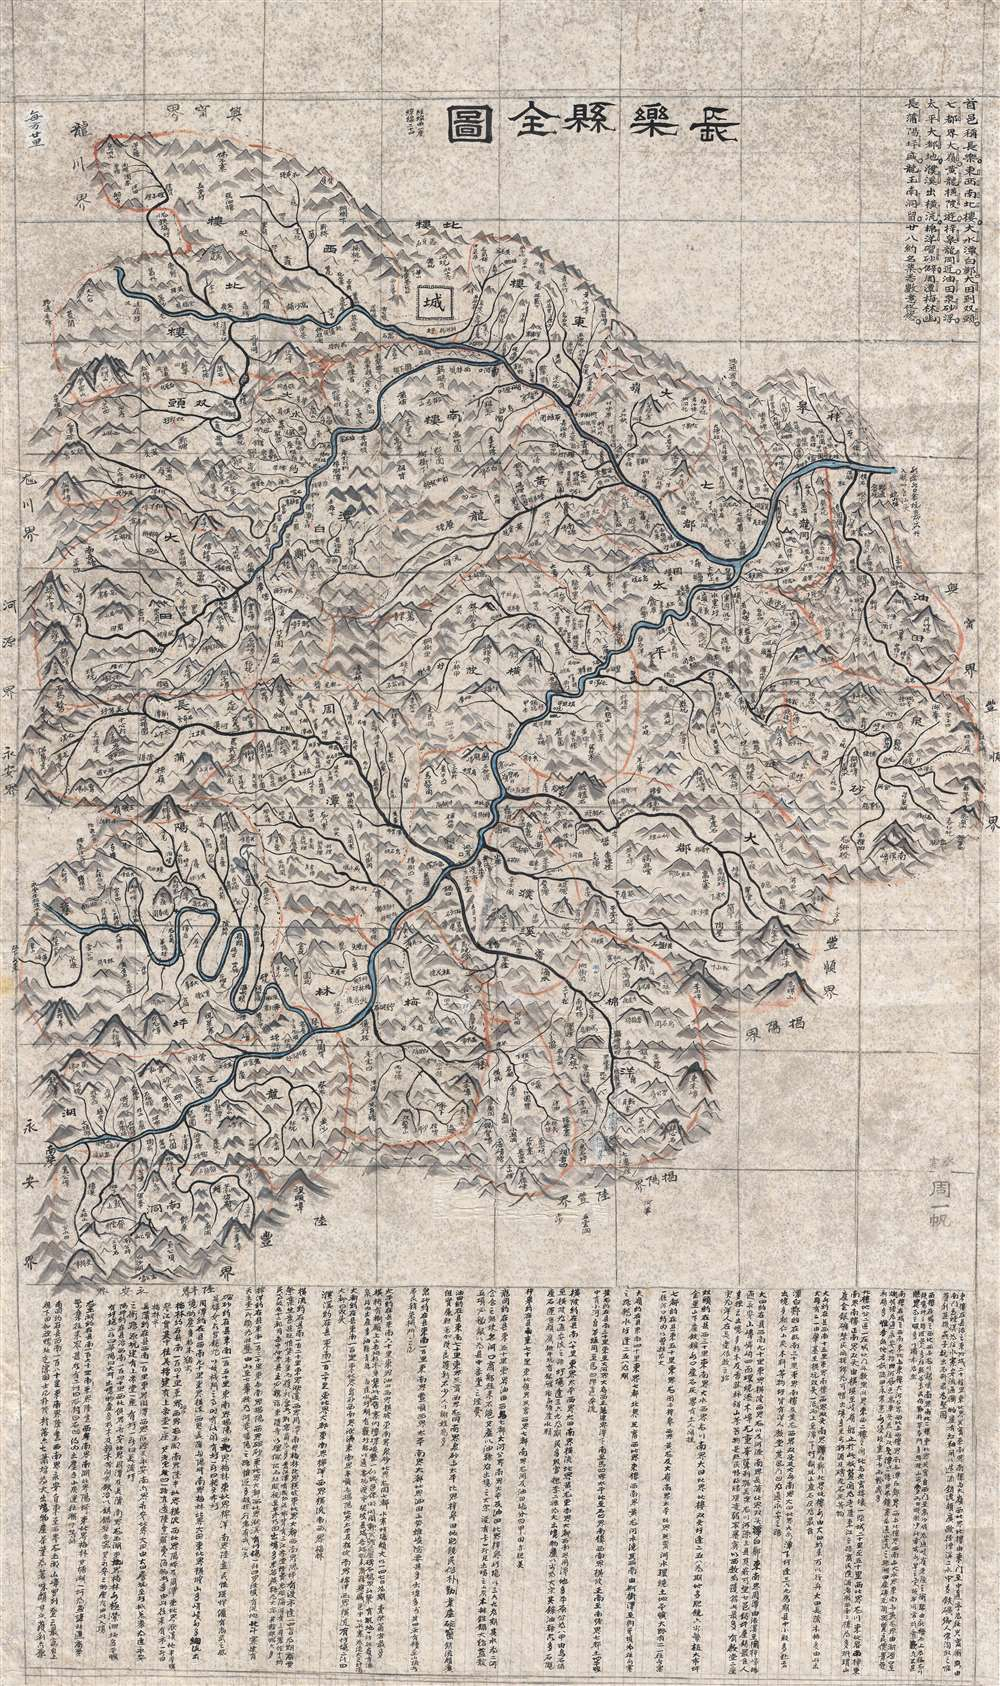 長樂縣全圖 / Complete Map of Changle County.